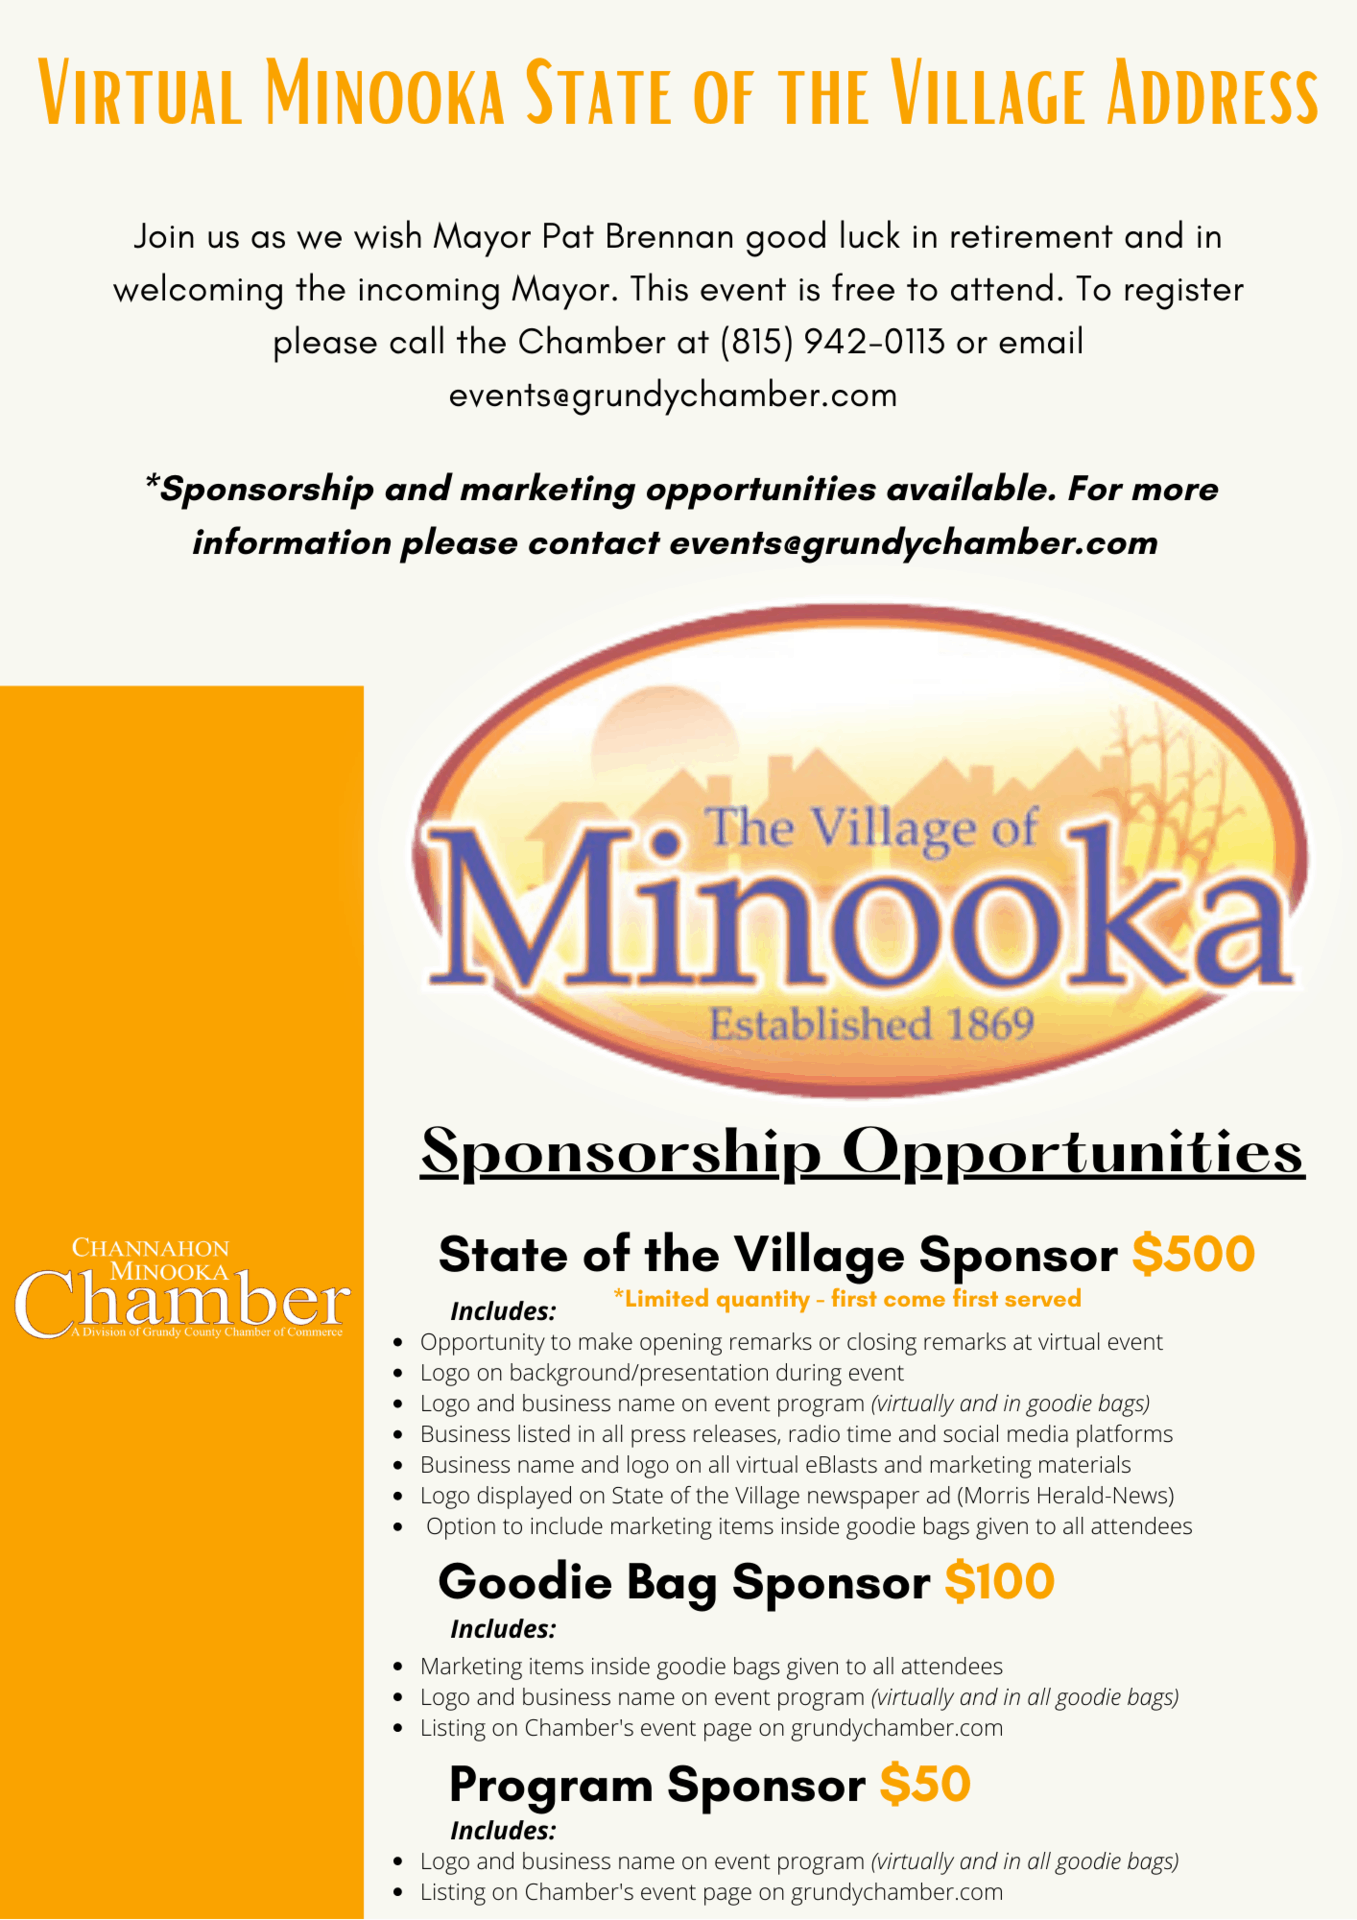 Minooka SOV Village Flyer - Marketing & Sponsorships 2021